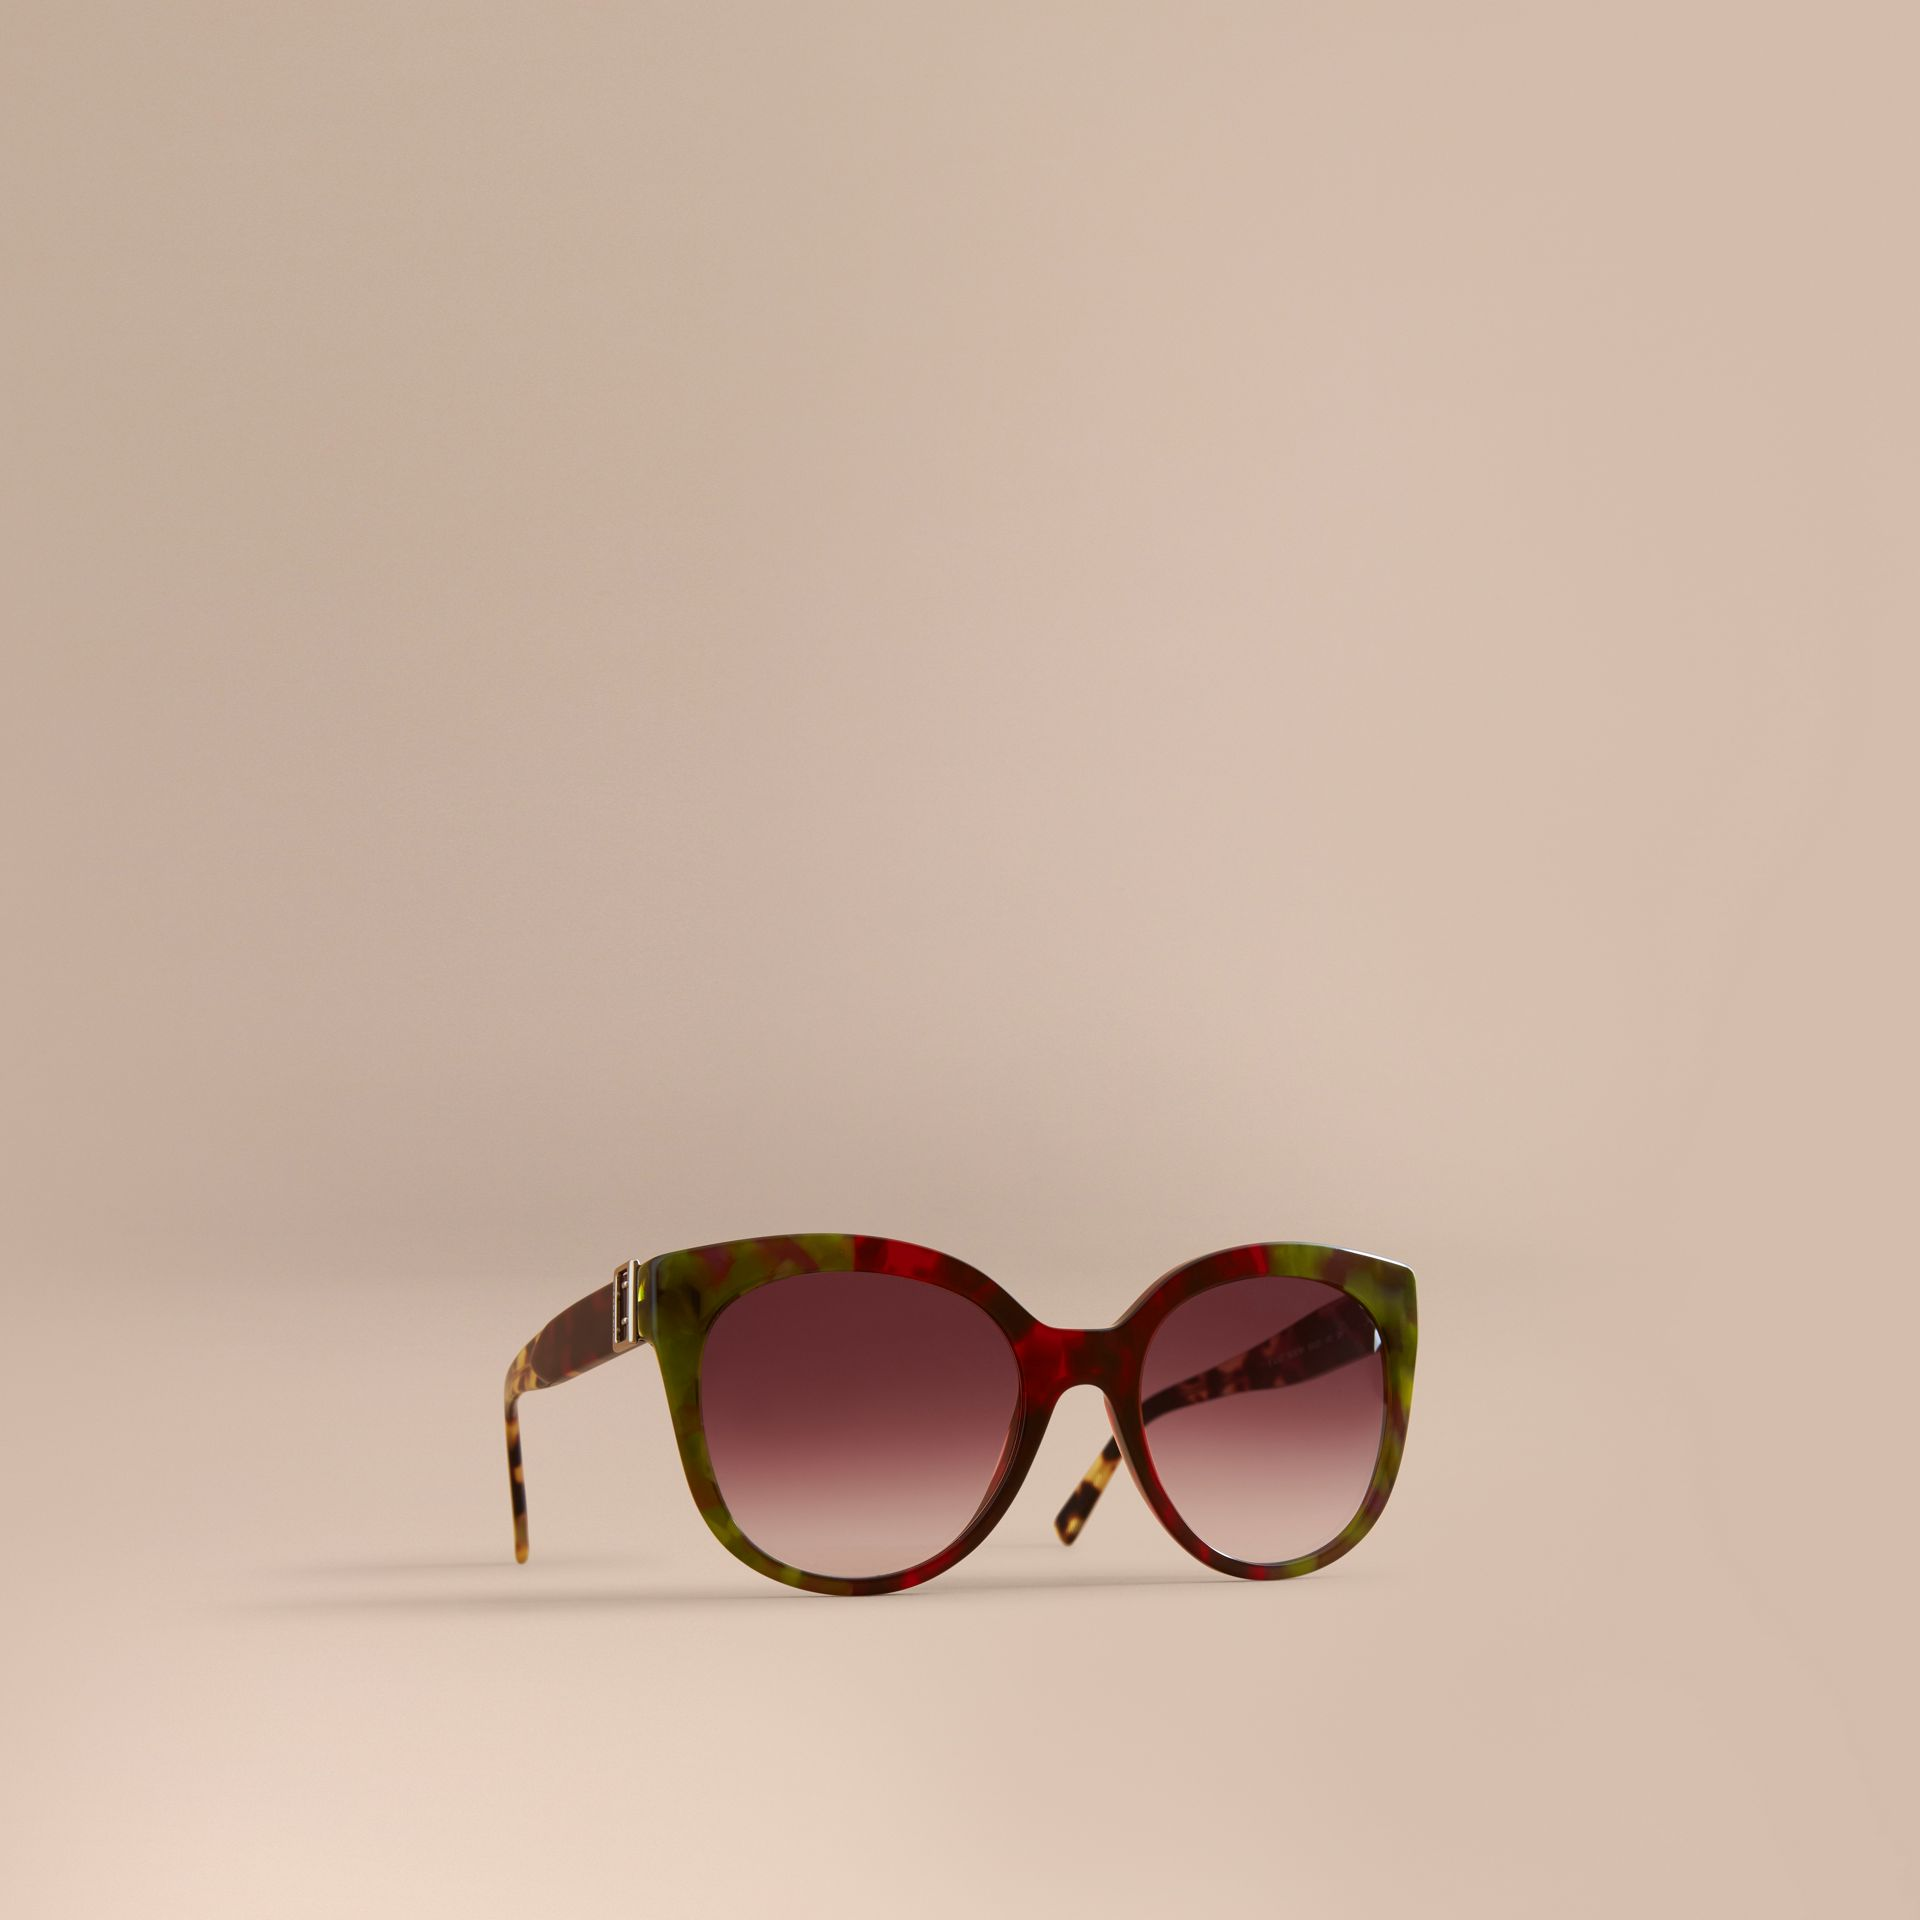 Buckle Detail Cat-eye Frame Sunglasses in Cardinal Red - Women | Burberry Australia - gallery image 1